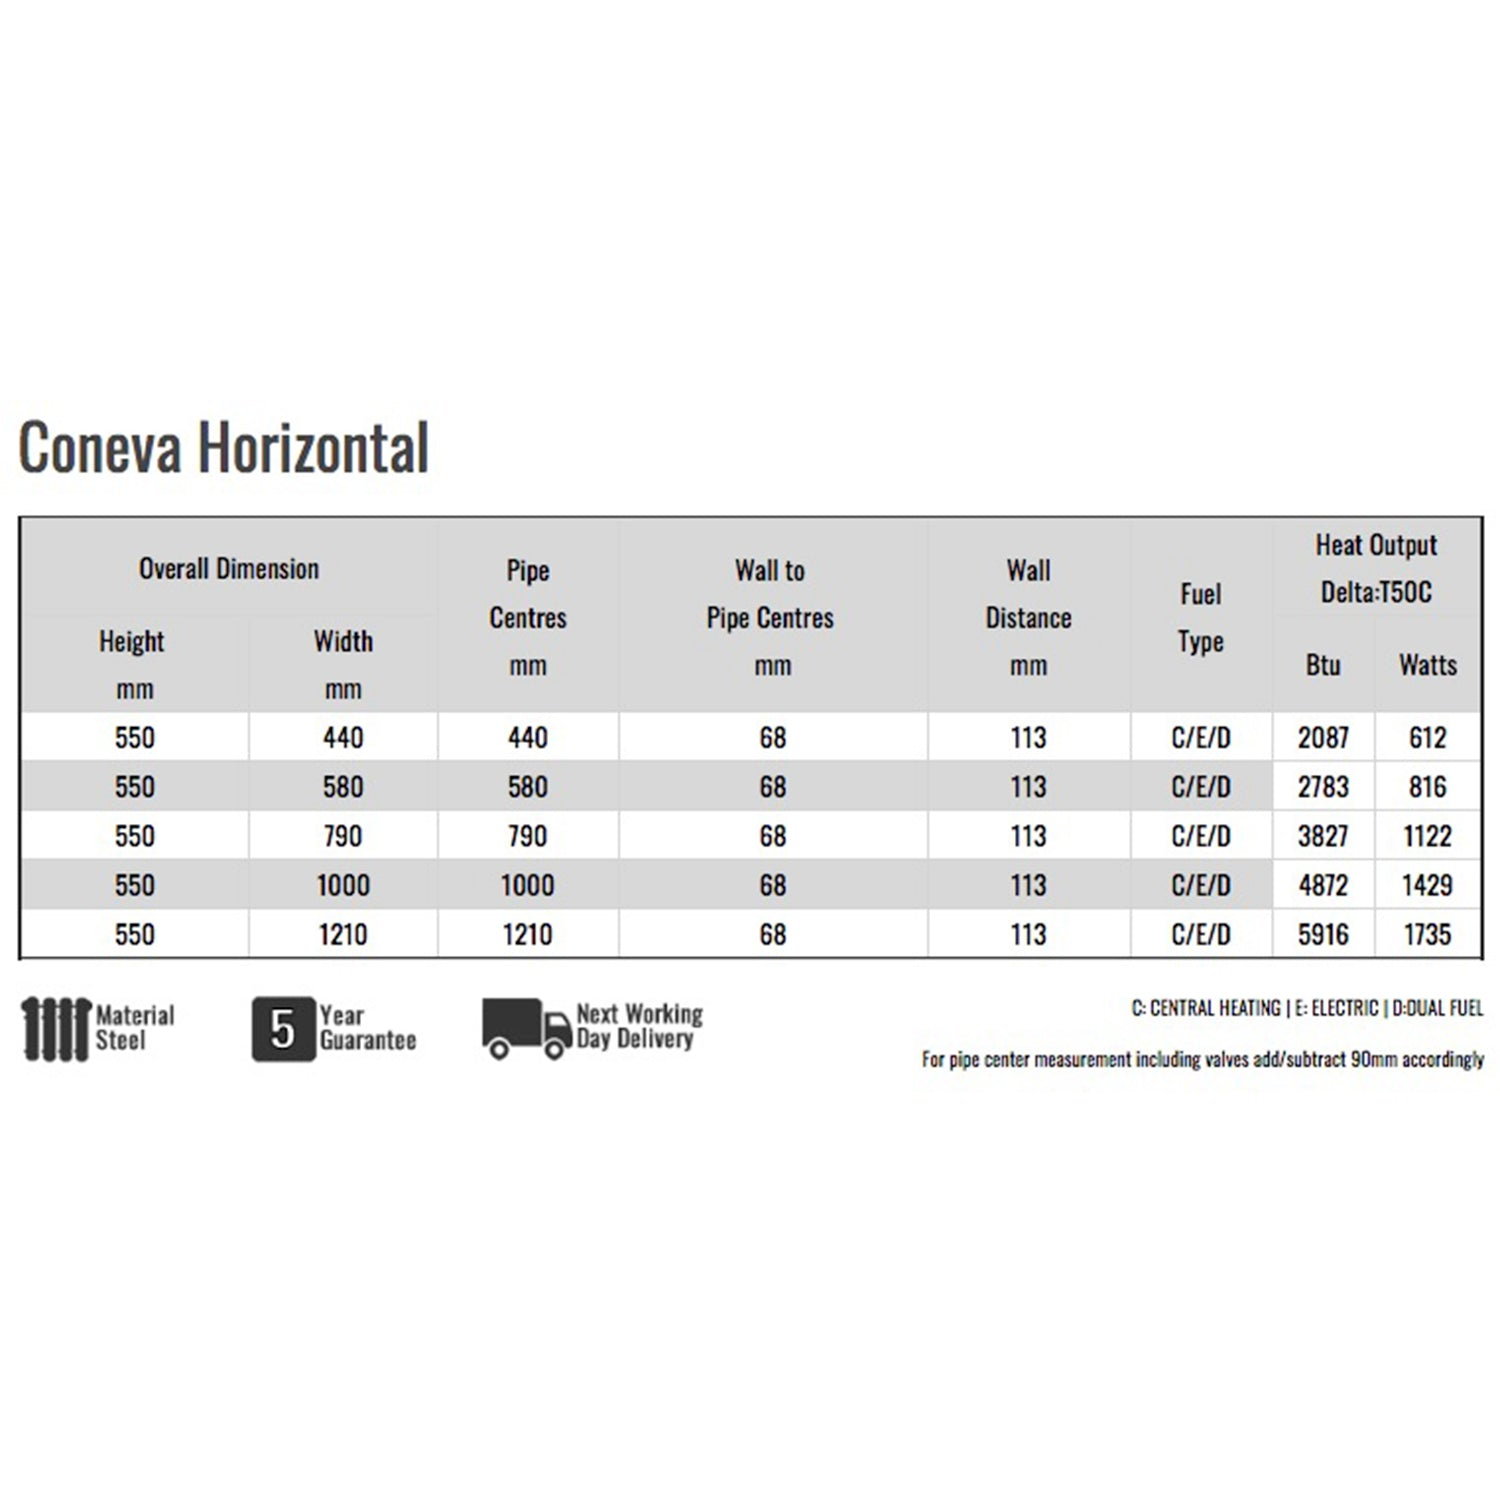 Reina Coneva Specifications Chart